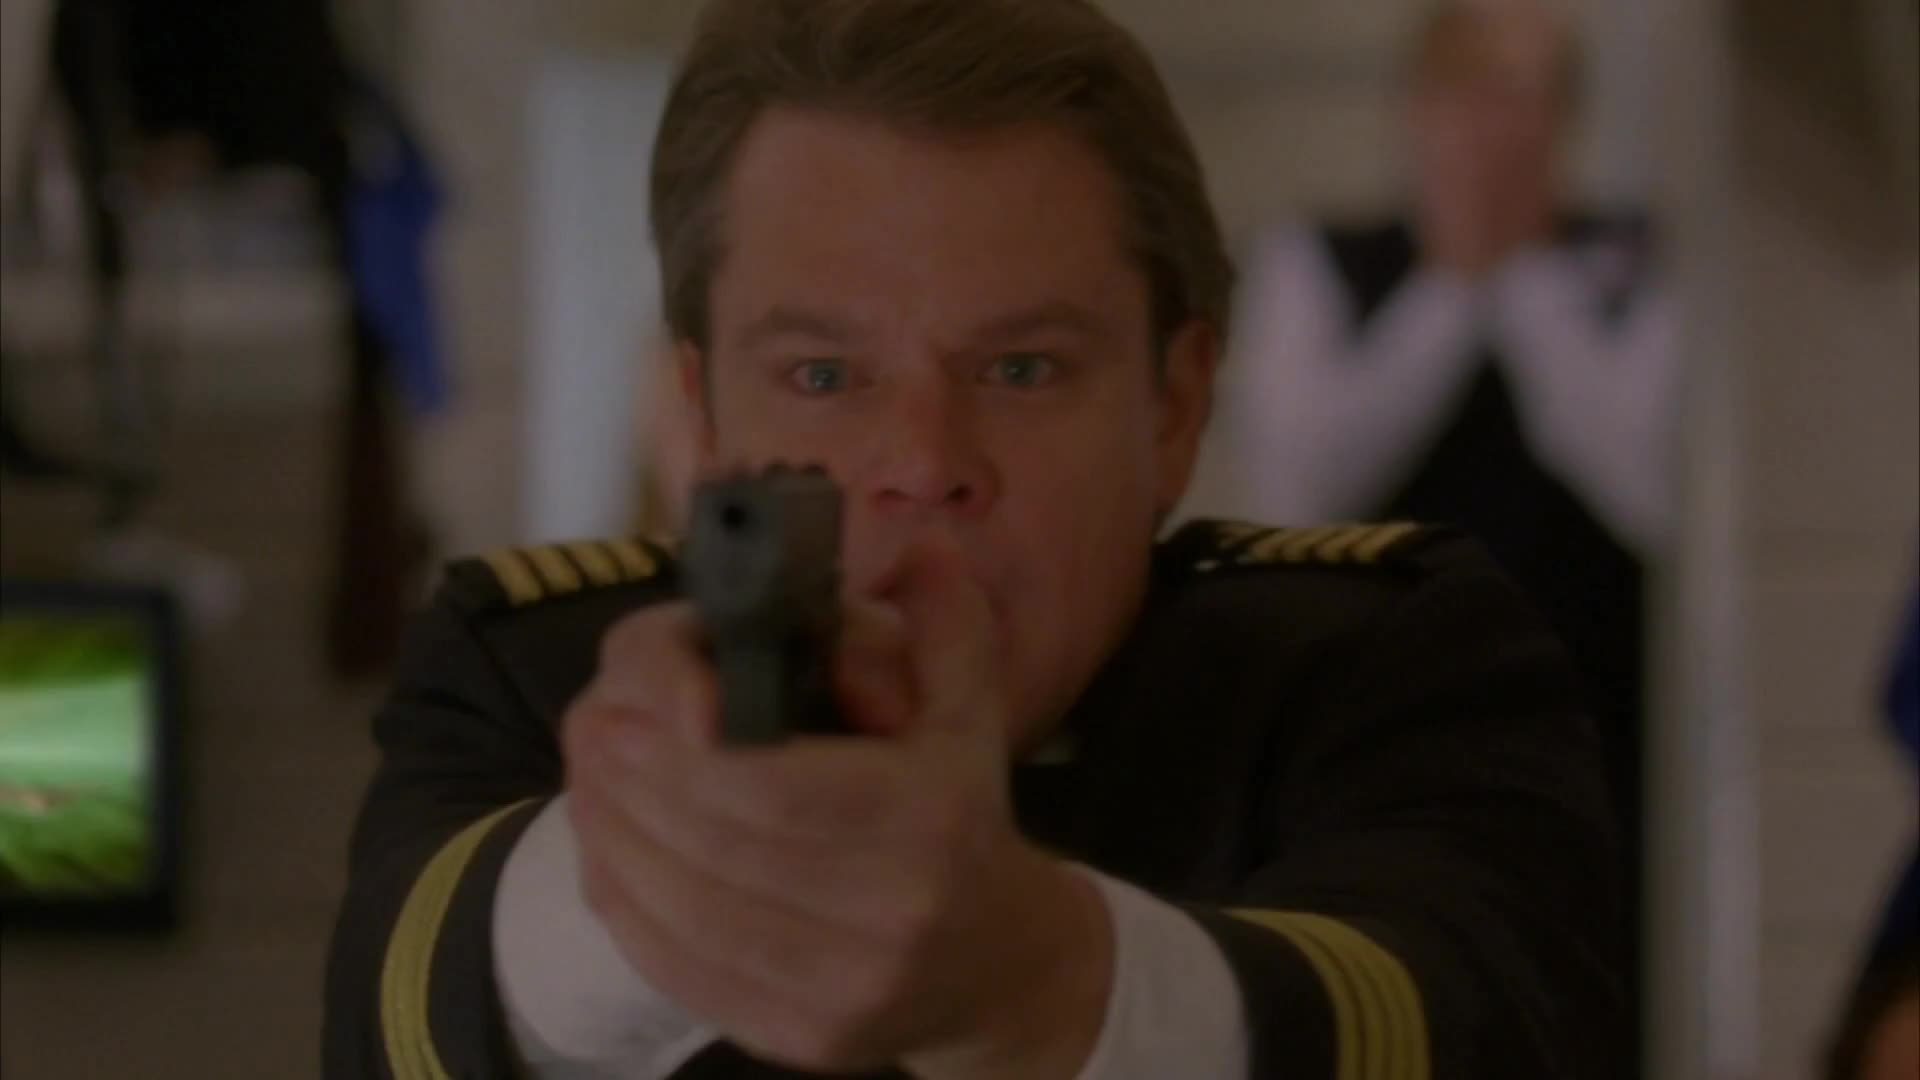 30 ROCK, Carol, Damon, Double-Edged Sword, I, Matt, S05E14, celebs, matt damon, waste, will, you, I WILL WASTE YOU!! GIFs